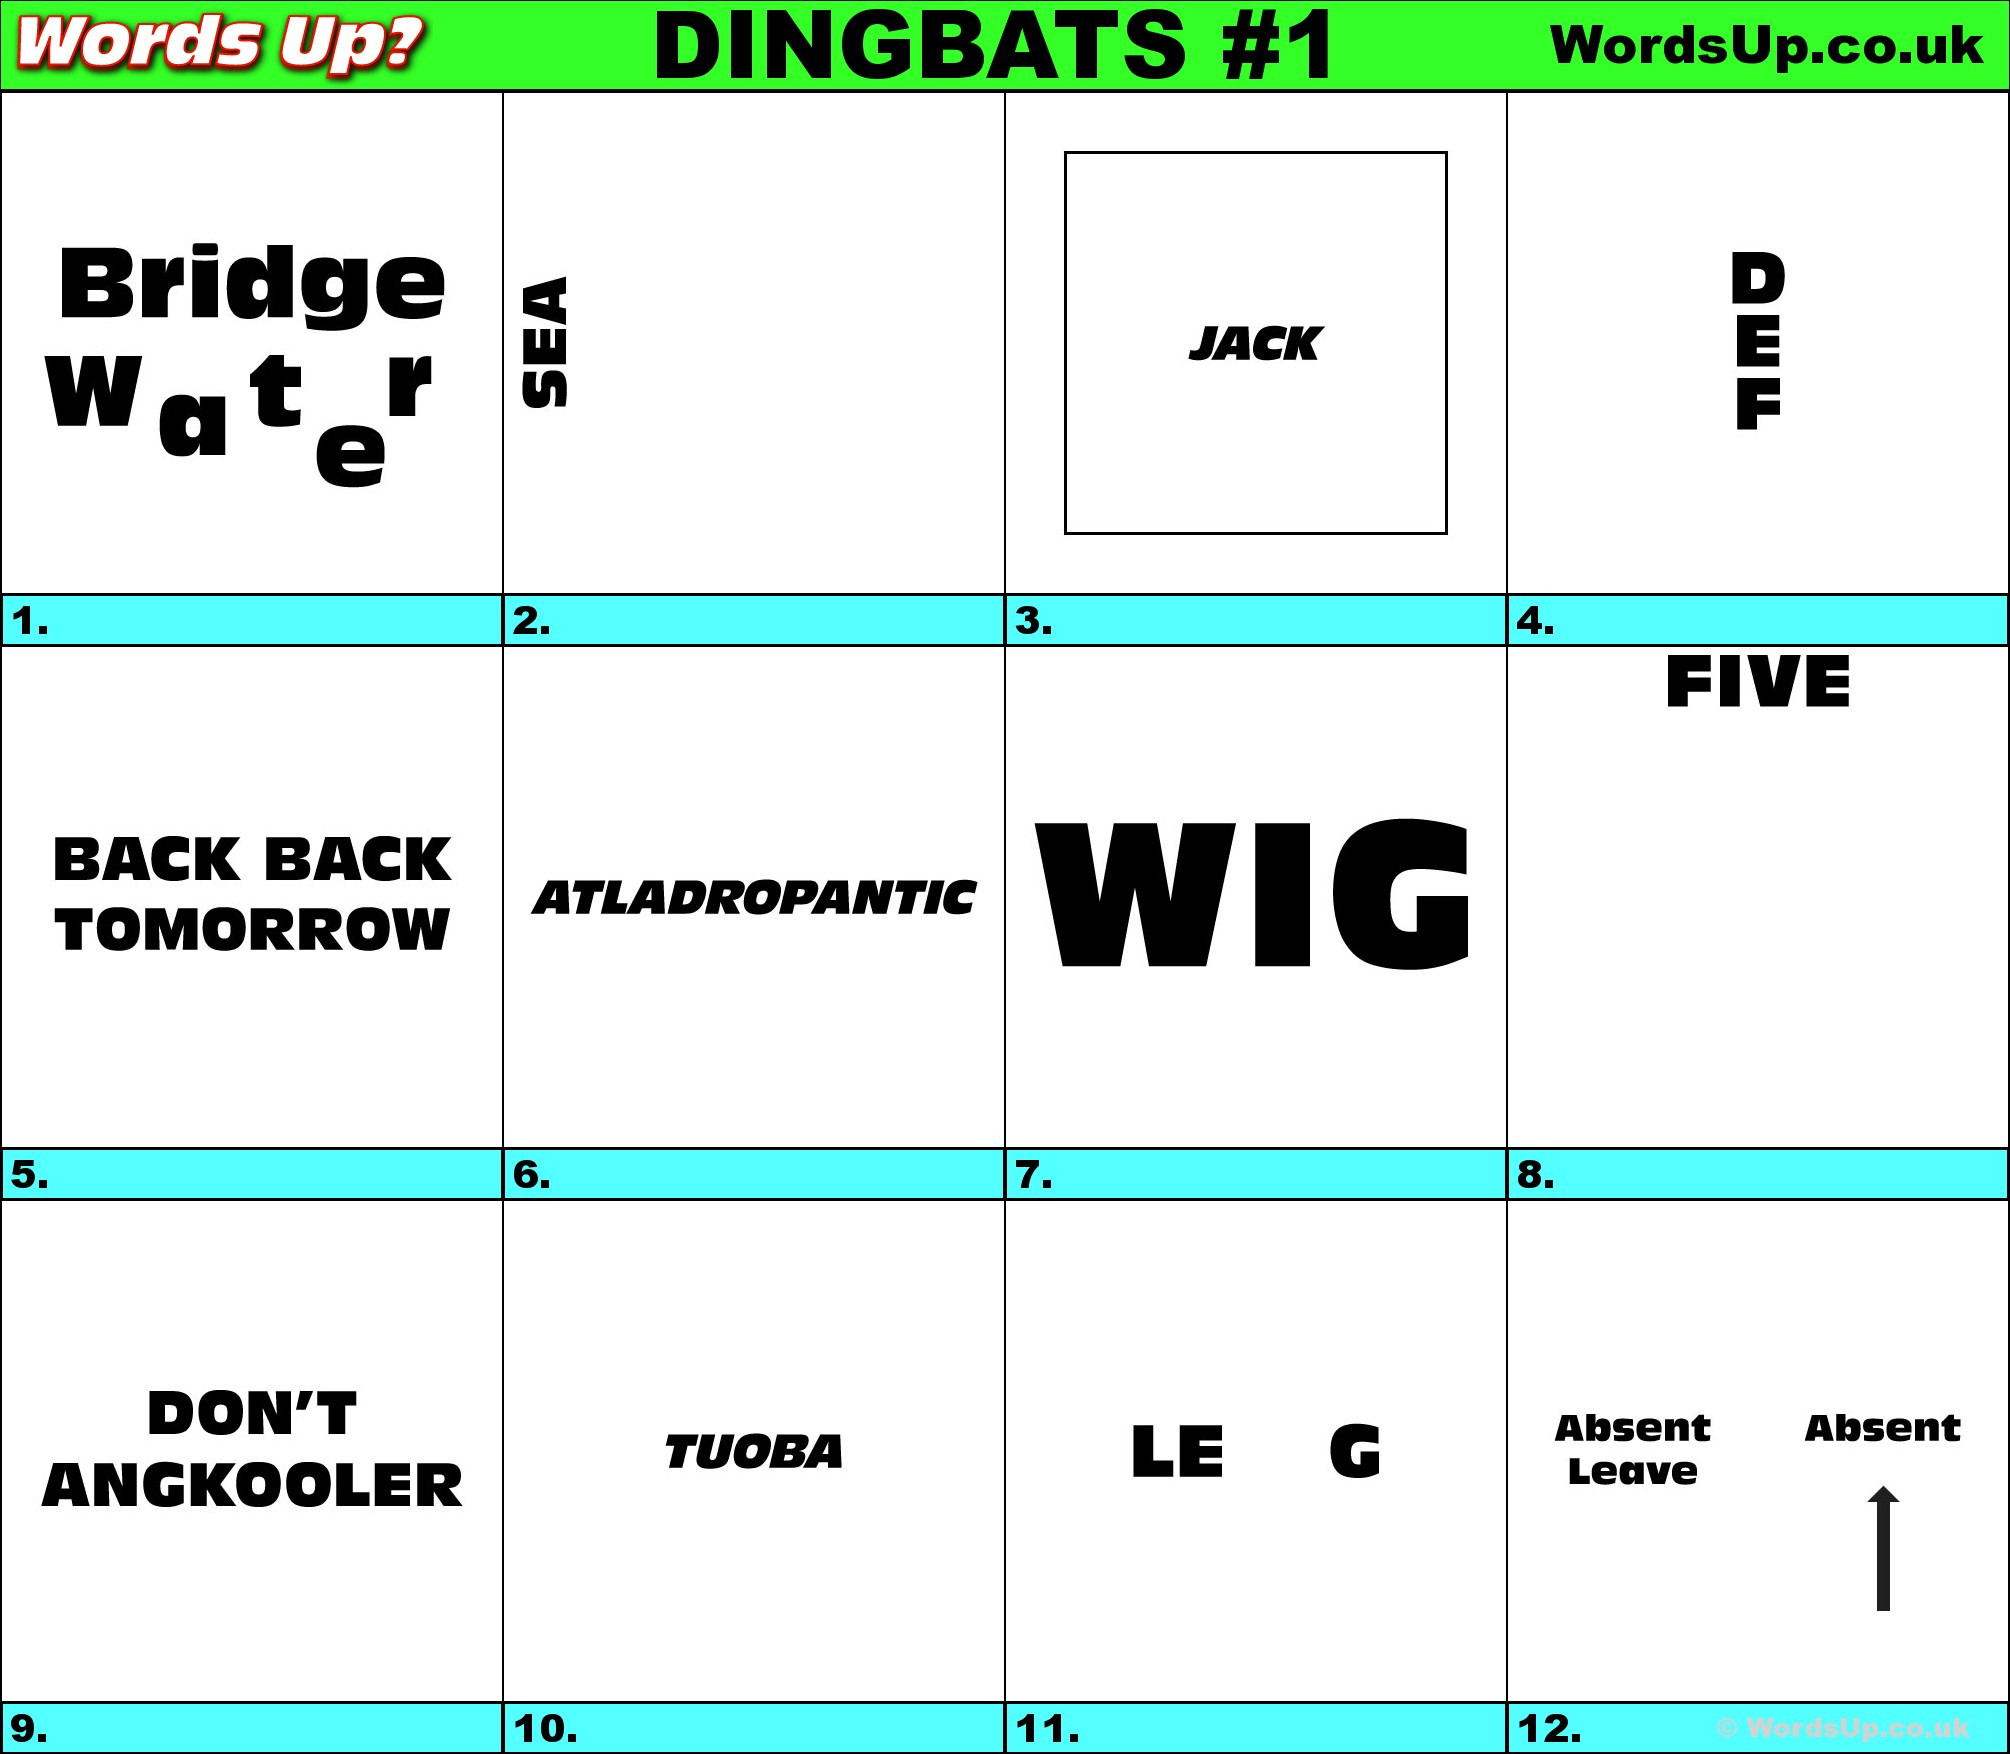 Words Up? Dingbat Puzzles - Printable Dingbat Puzzles With Answers